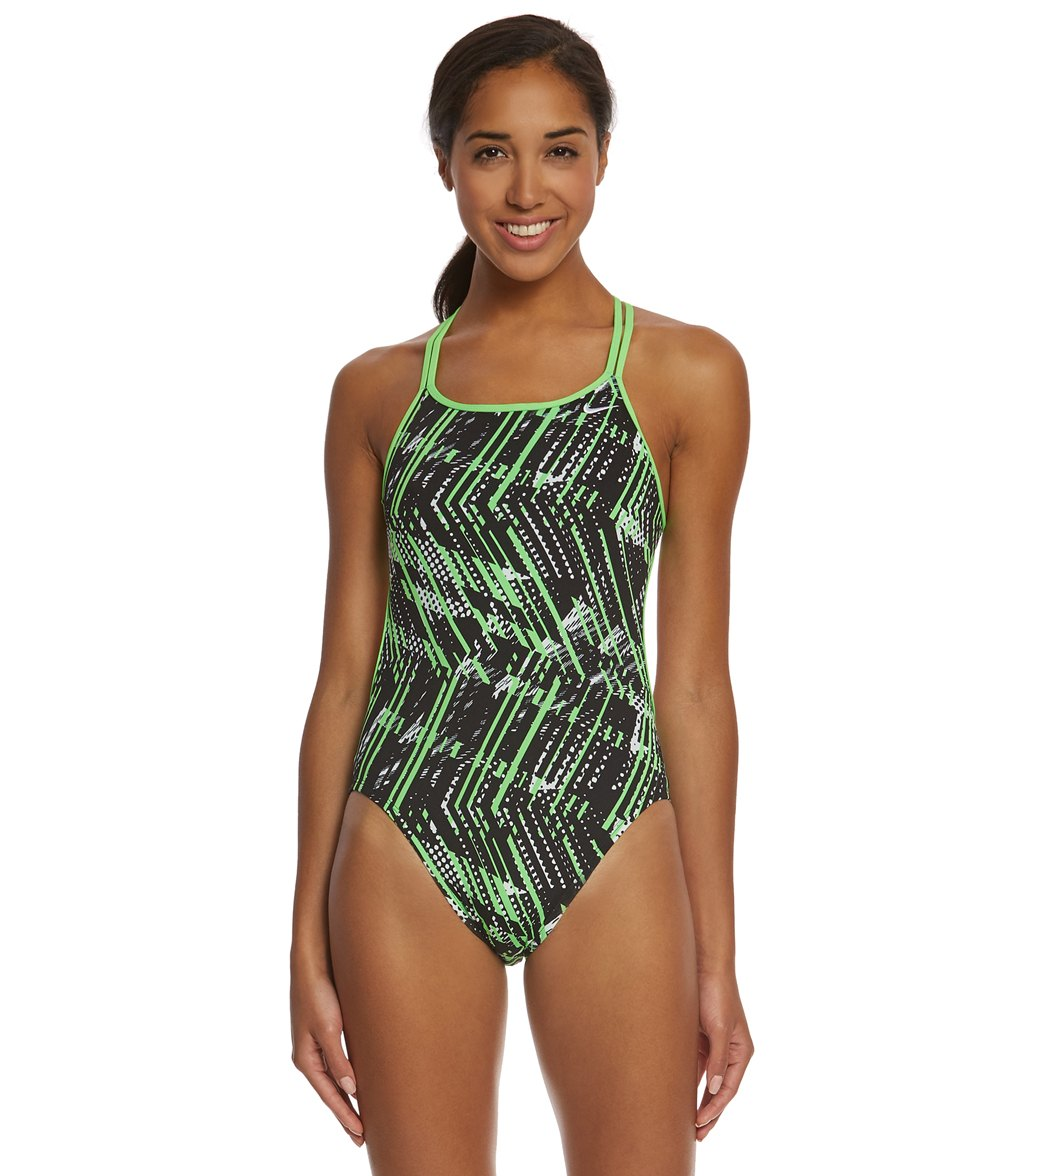 a967c659d4e Nike Women s Shark Spiderback Tank One Piece Swimsuit at SwimOutlet.com -  Free Shipping